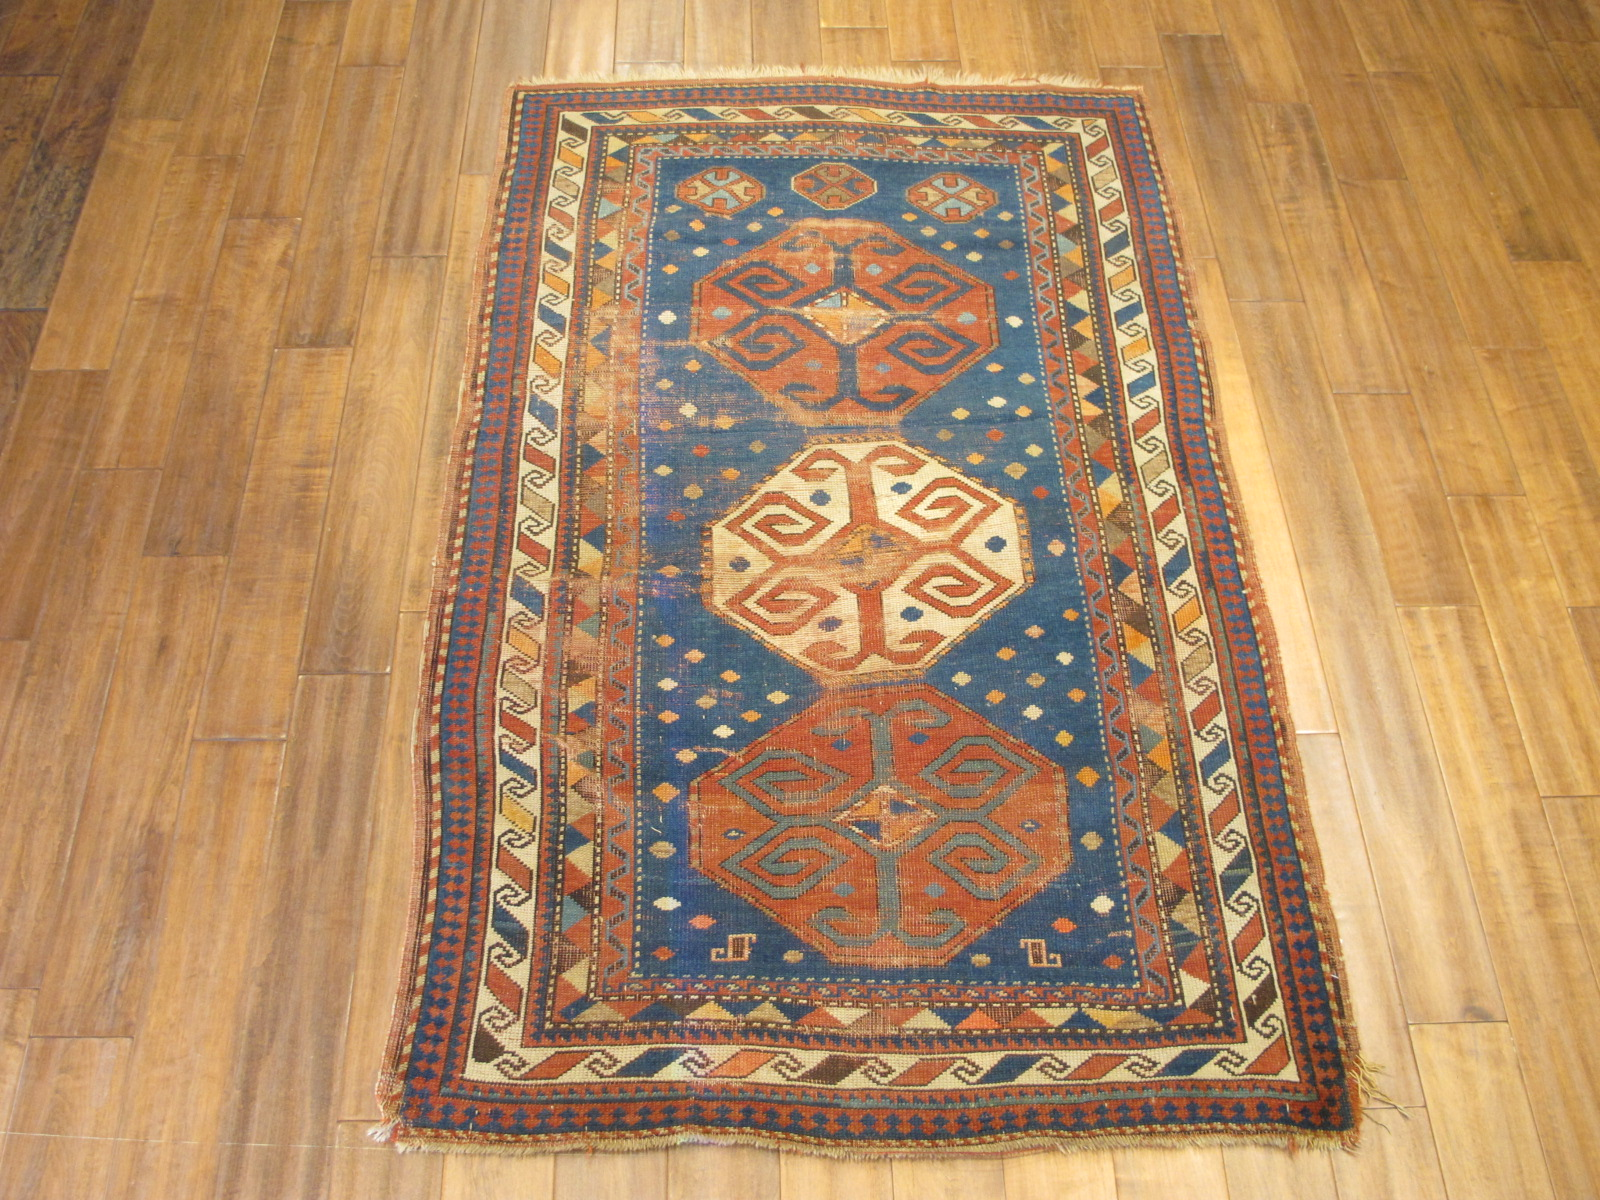 23092 antique caucasus kazak rug 3,10x7,3 (1)